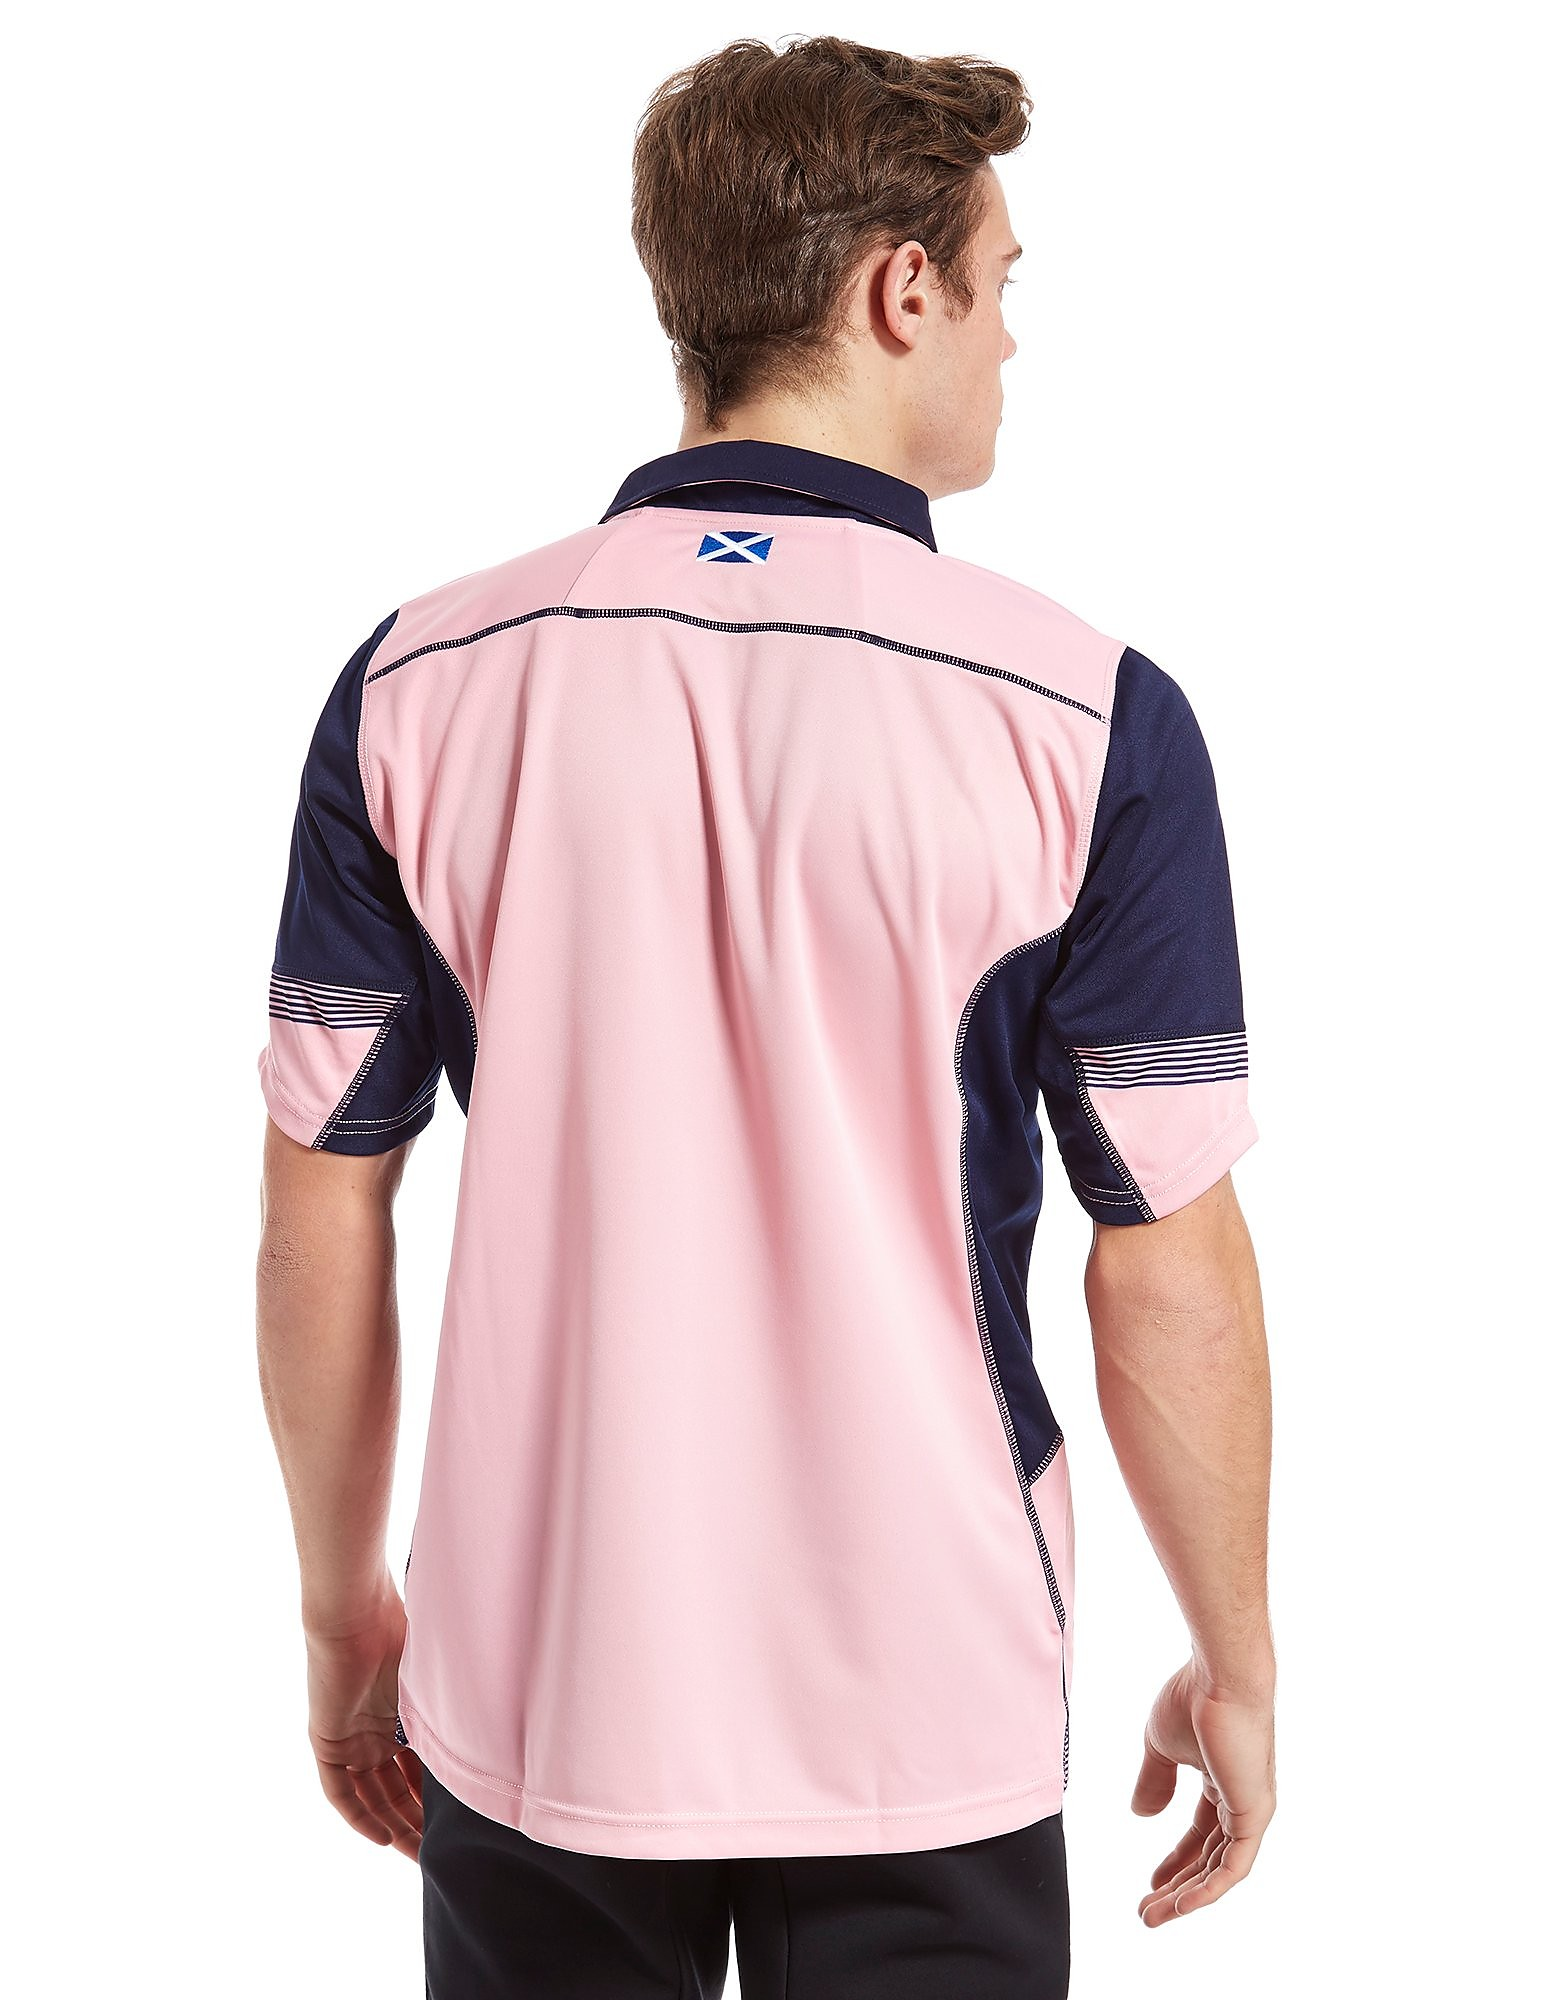 Macron Scotland RFU Away 2015/16 Sevens Shirt